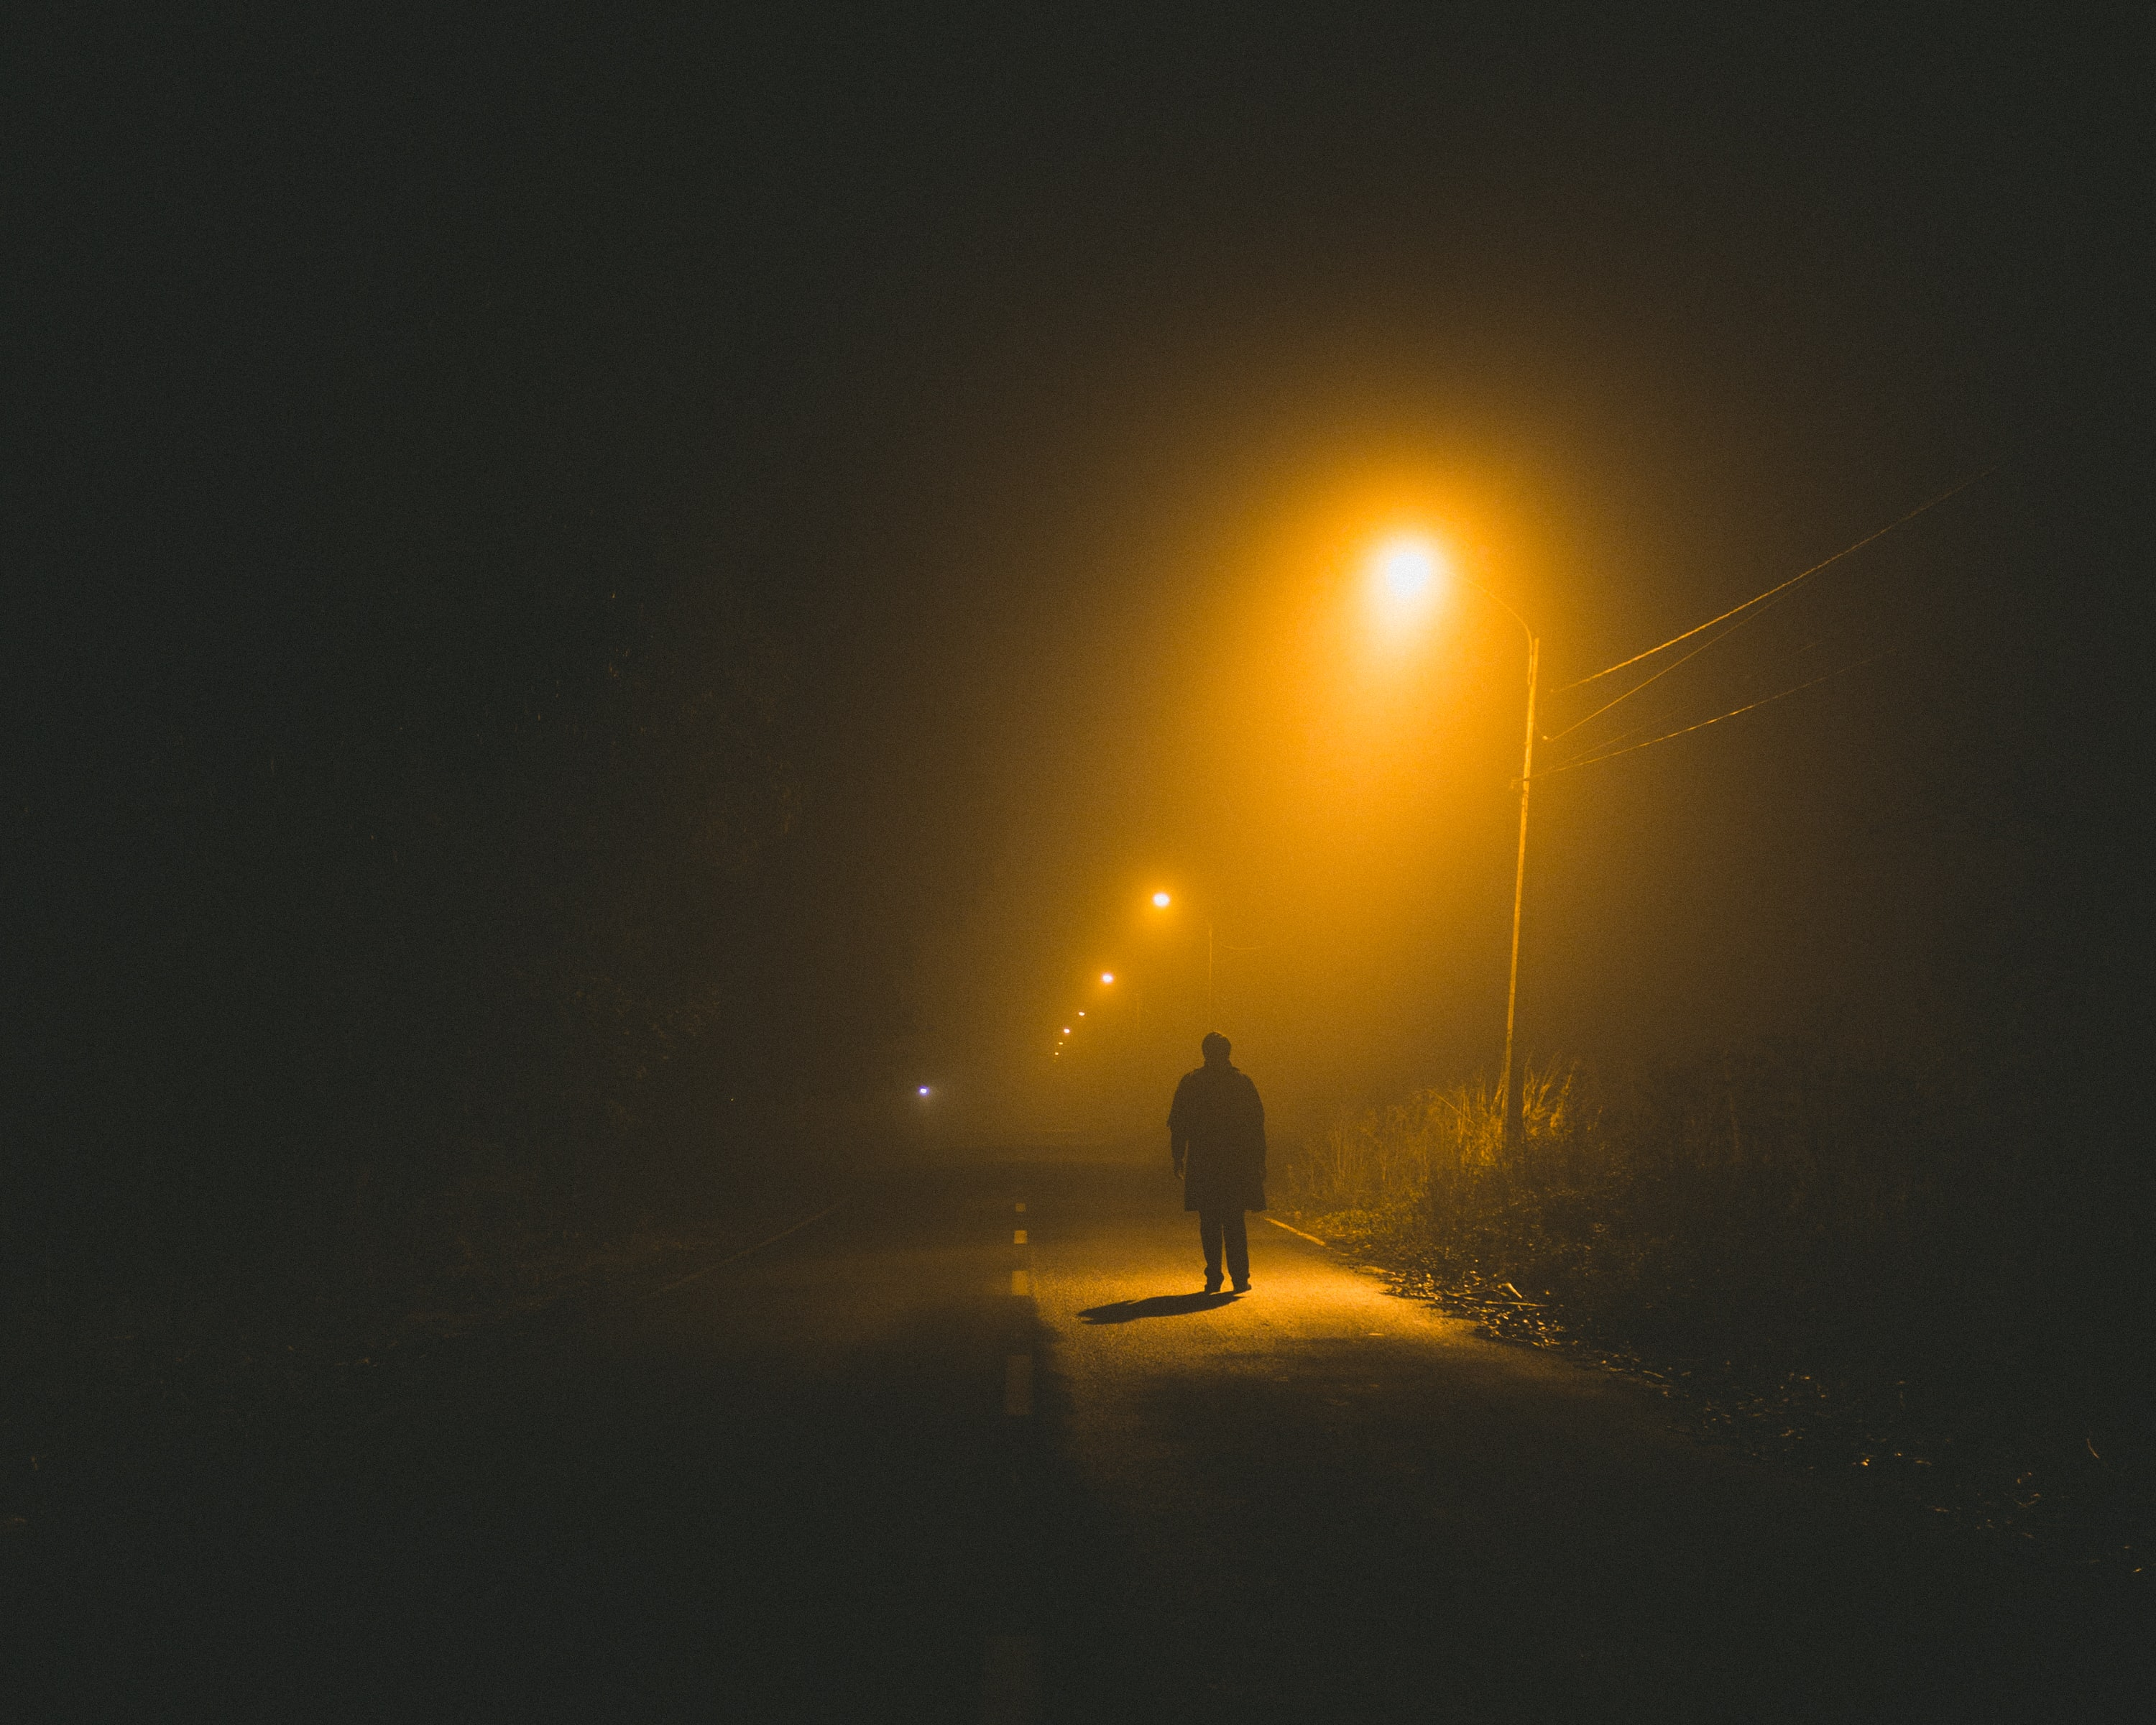 person walking on road side at night time